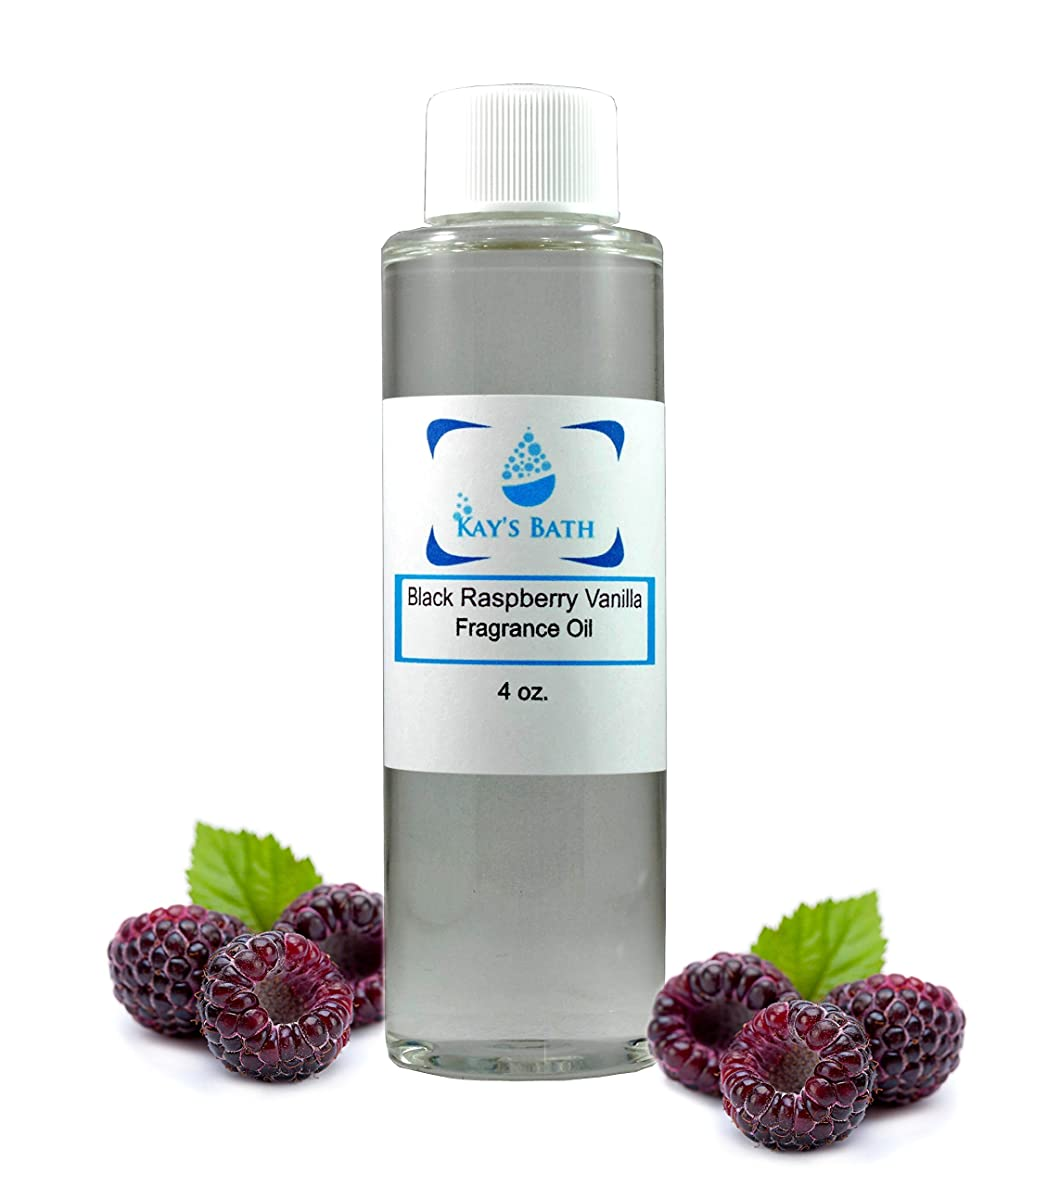 Black Raspberry Vanilla Fragrance Oil - Essential for Candles, Bath Bombs, Perfume. Diffusers, Body Butter, Lotions and Soap Making - Works for All Bath and Body Products - 4 oz. (4 oz)